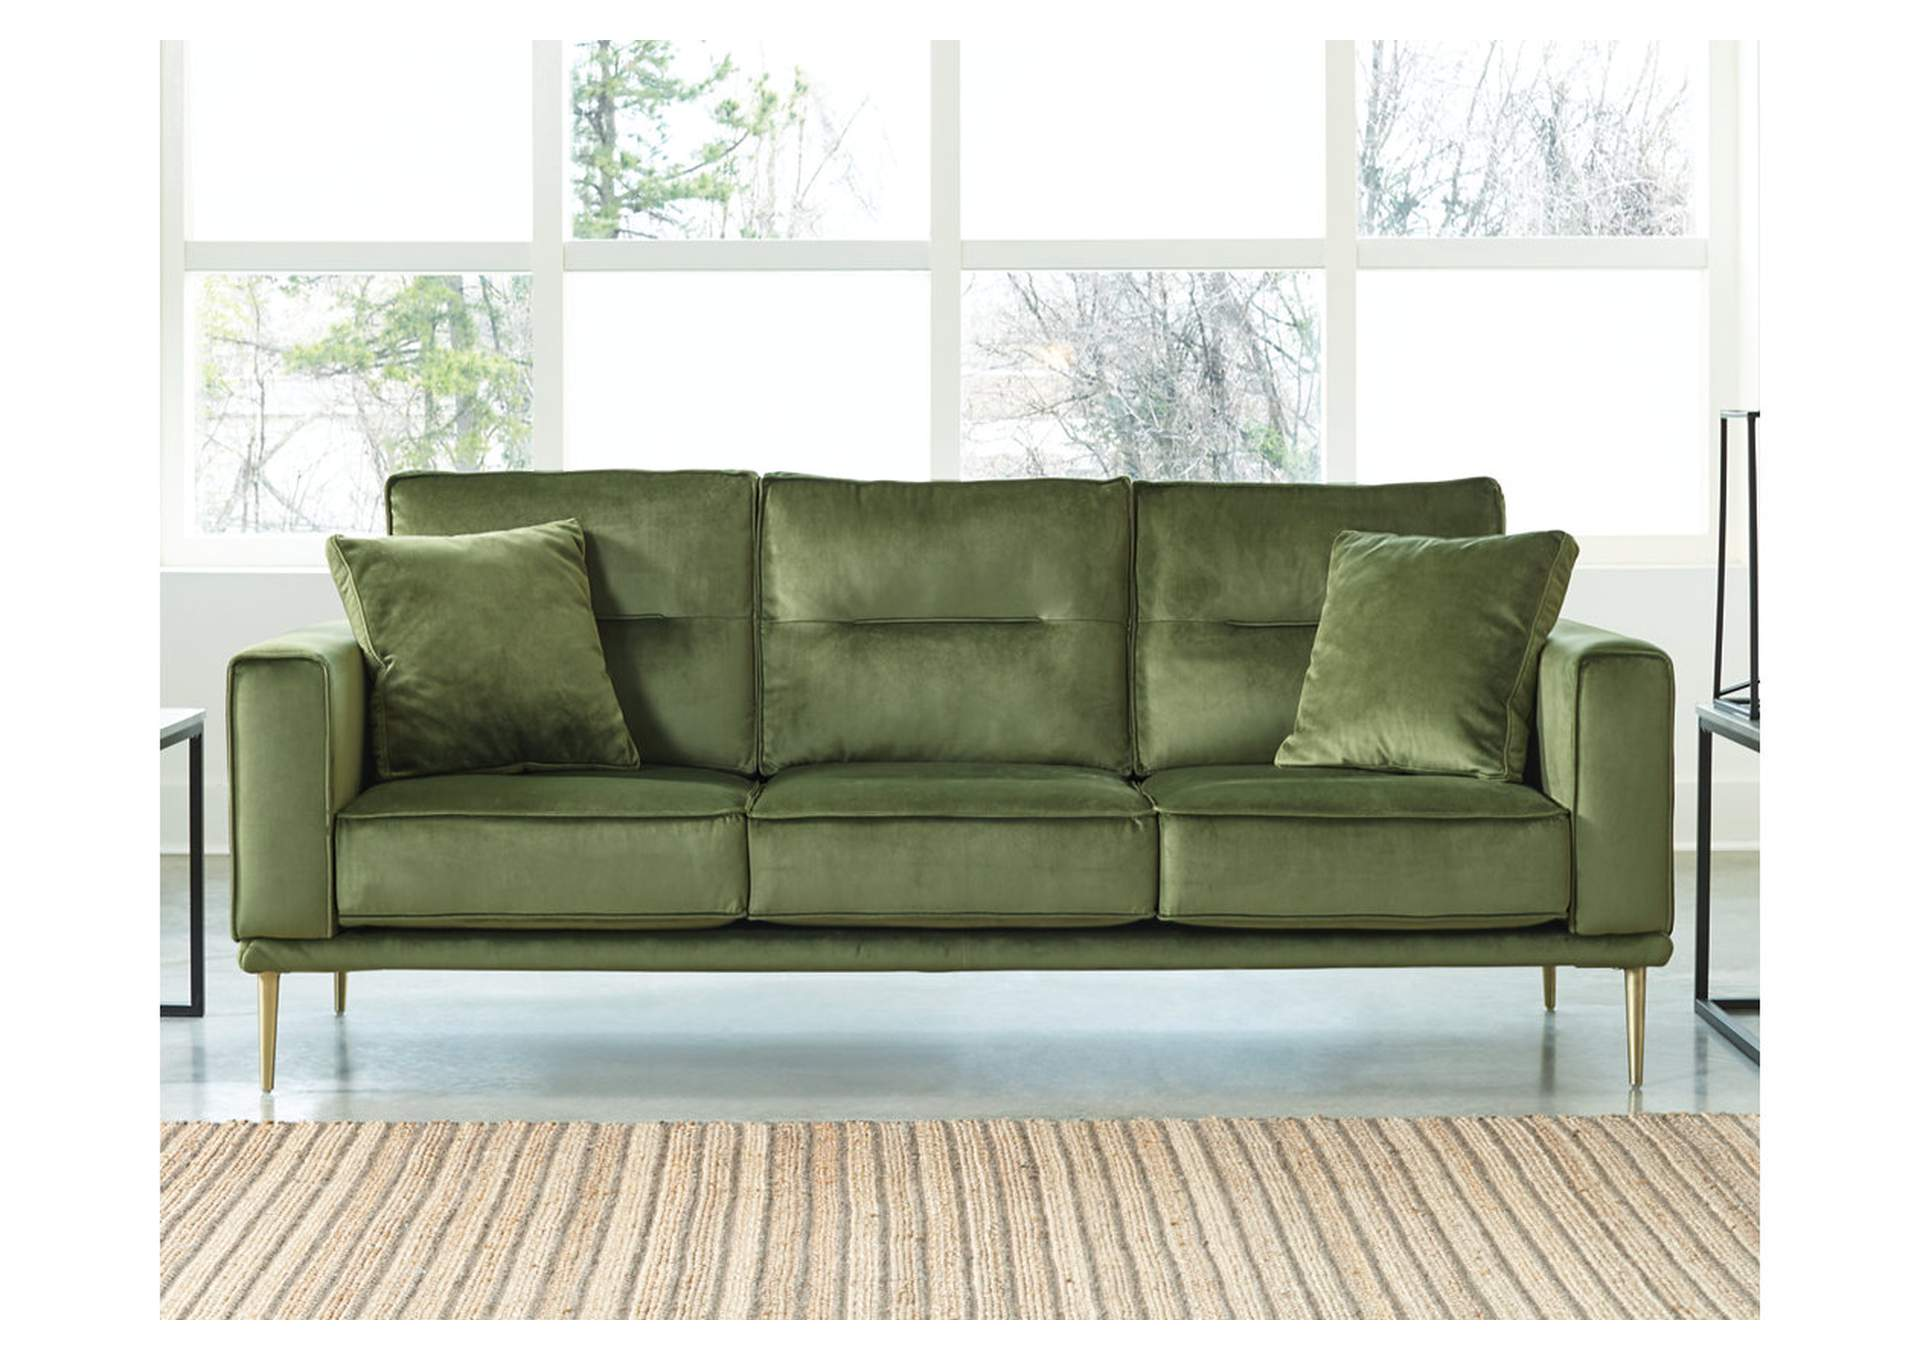 Macleary Sofa,Signature Design By Ashley